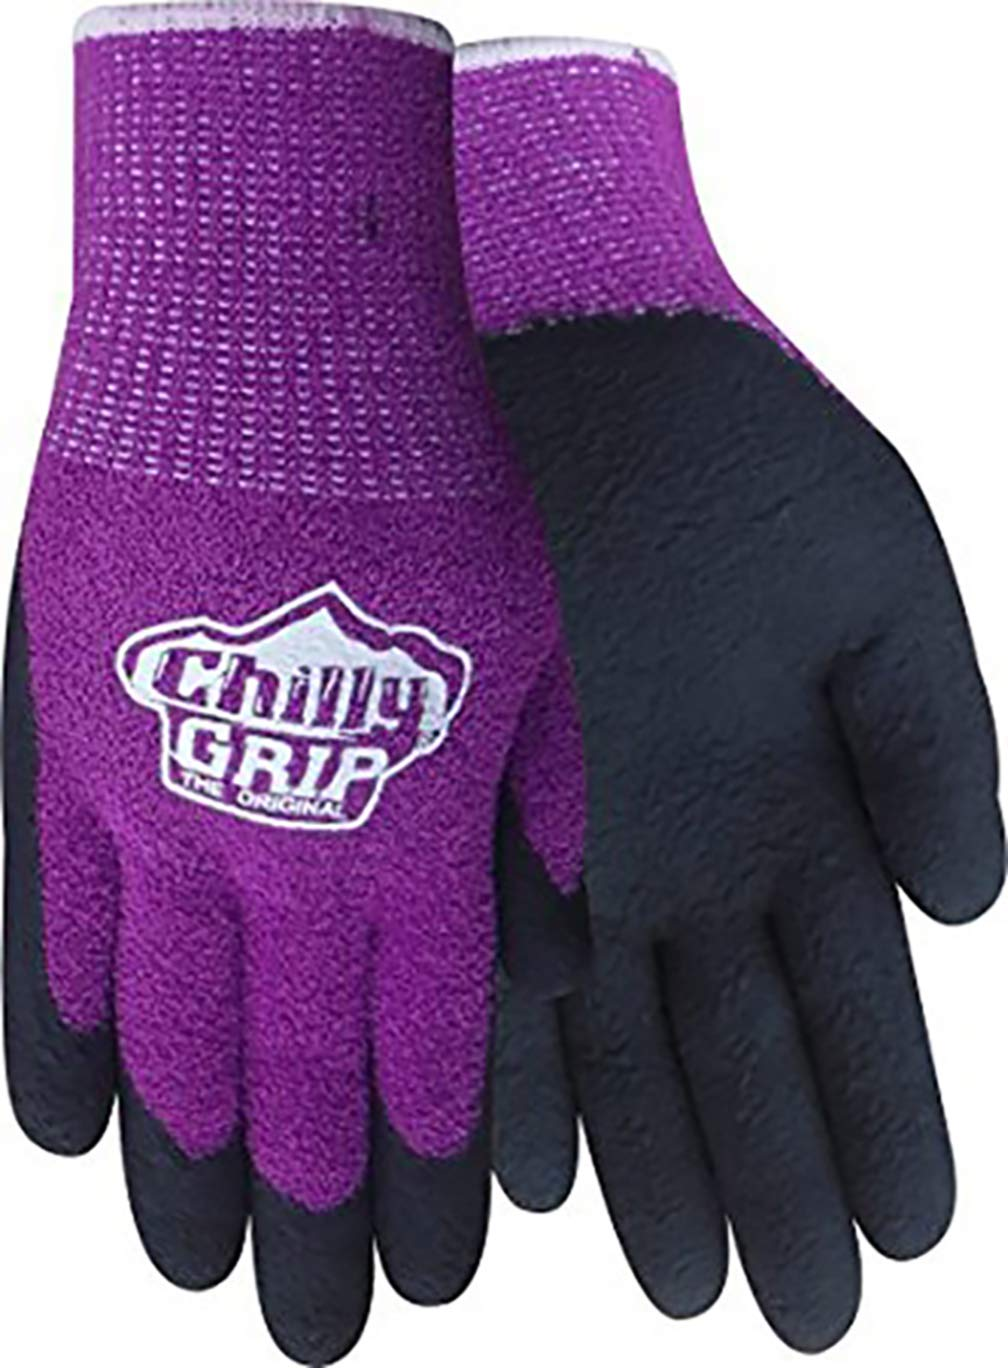 Chilly Grip Women's Chenille Glove Small 3 Pack